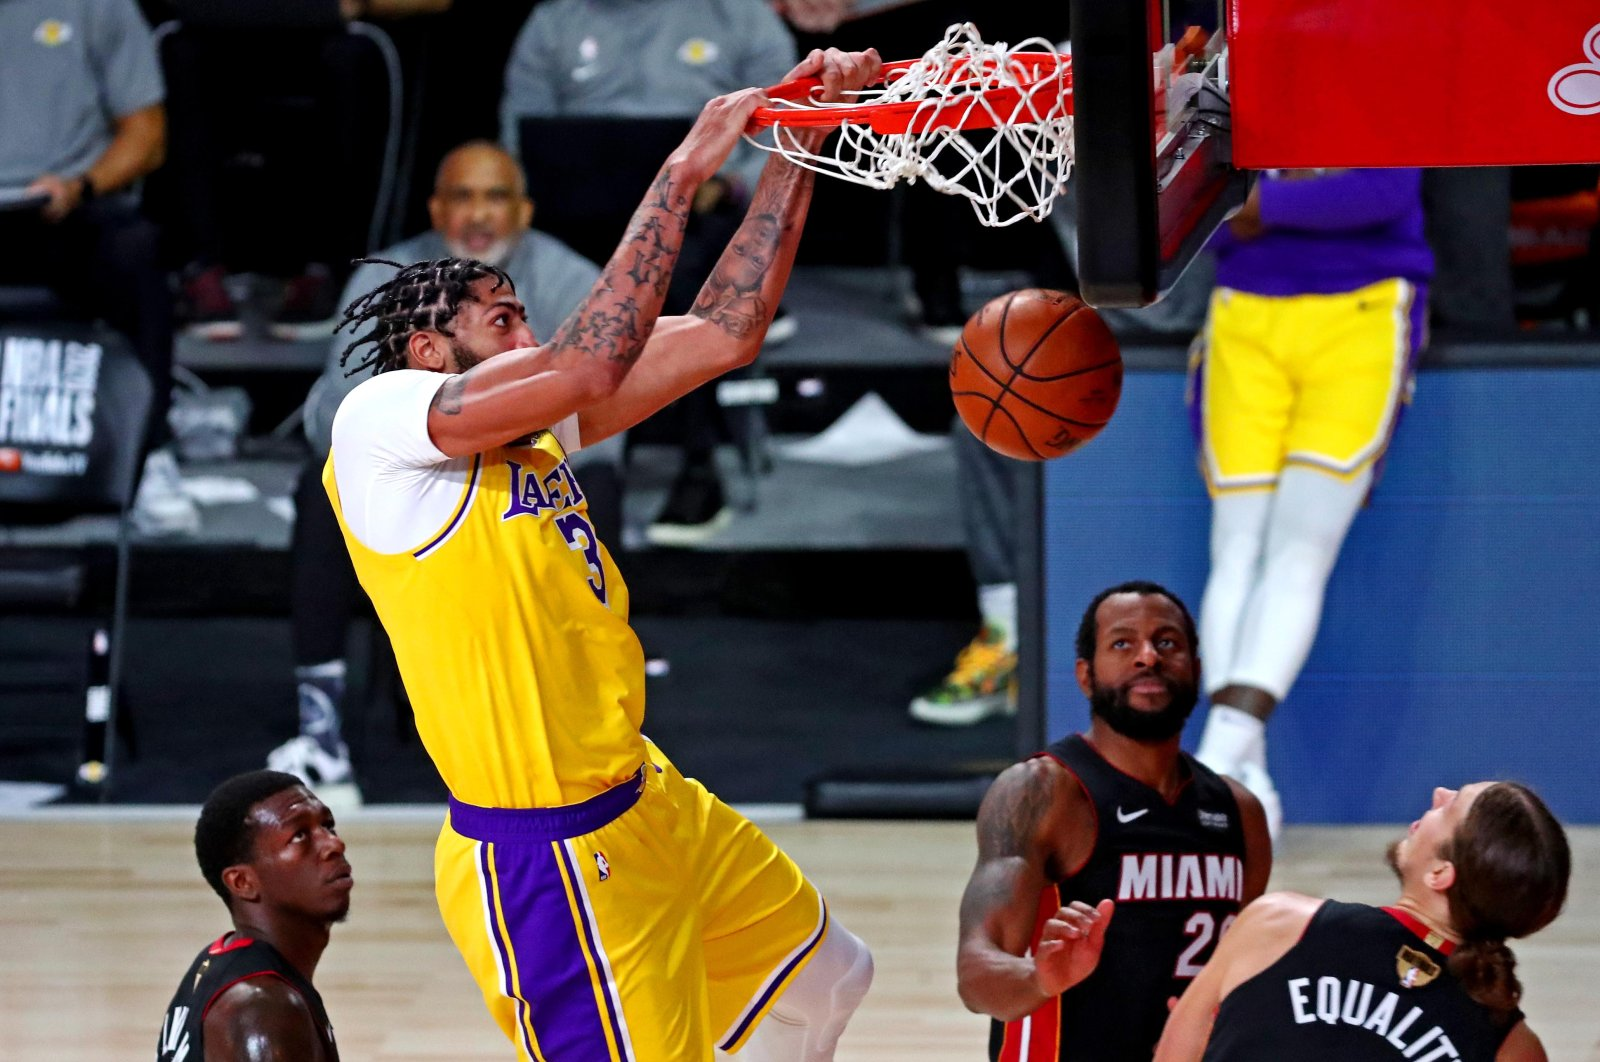 Los Angeles Lakers forward Anthony Davis dunks the ball during Game 4 of the NBA Finals, in Lake Buena Vista, Florida, U.S., Oct. 6, 2020. (Reuters Photo)